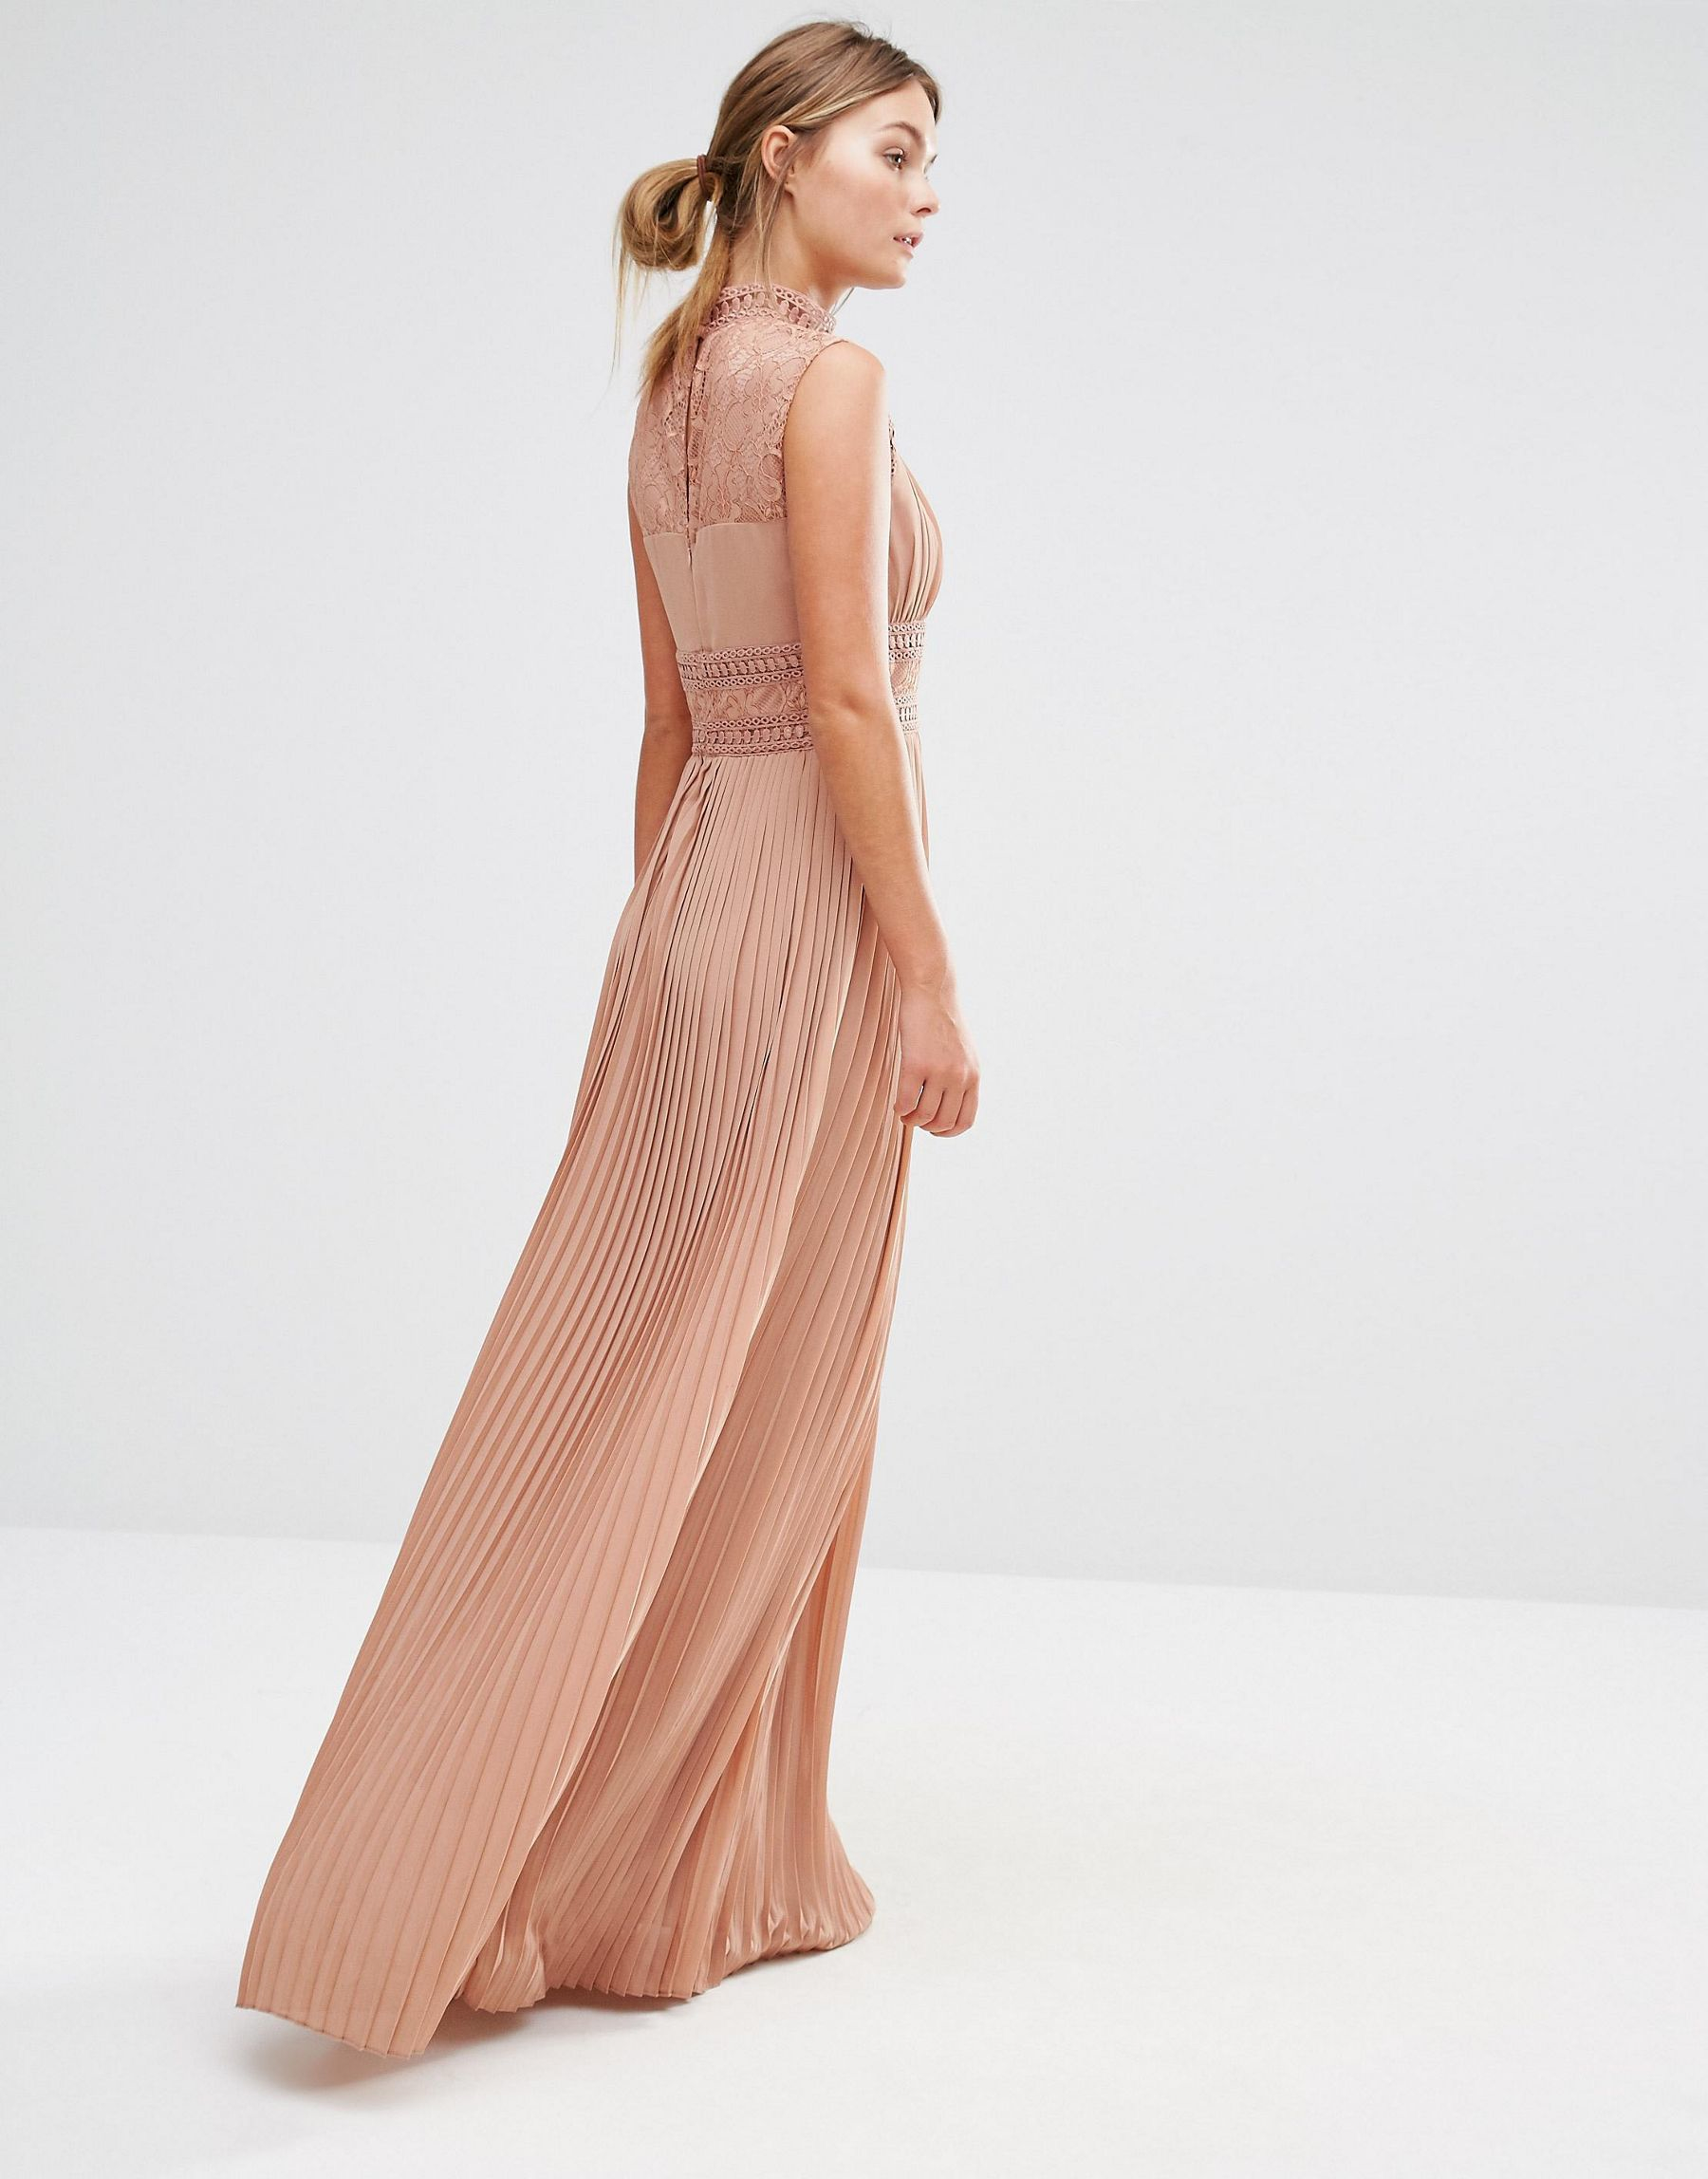 Lyst Tfnc London Wedding Pleated Maxi Dress With Lace Detail In Pink